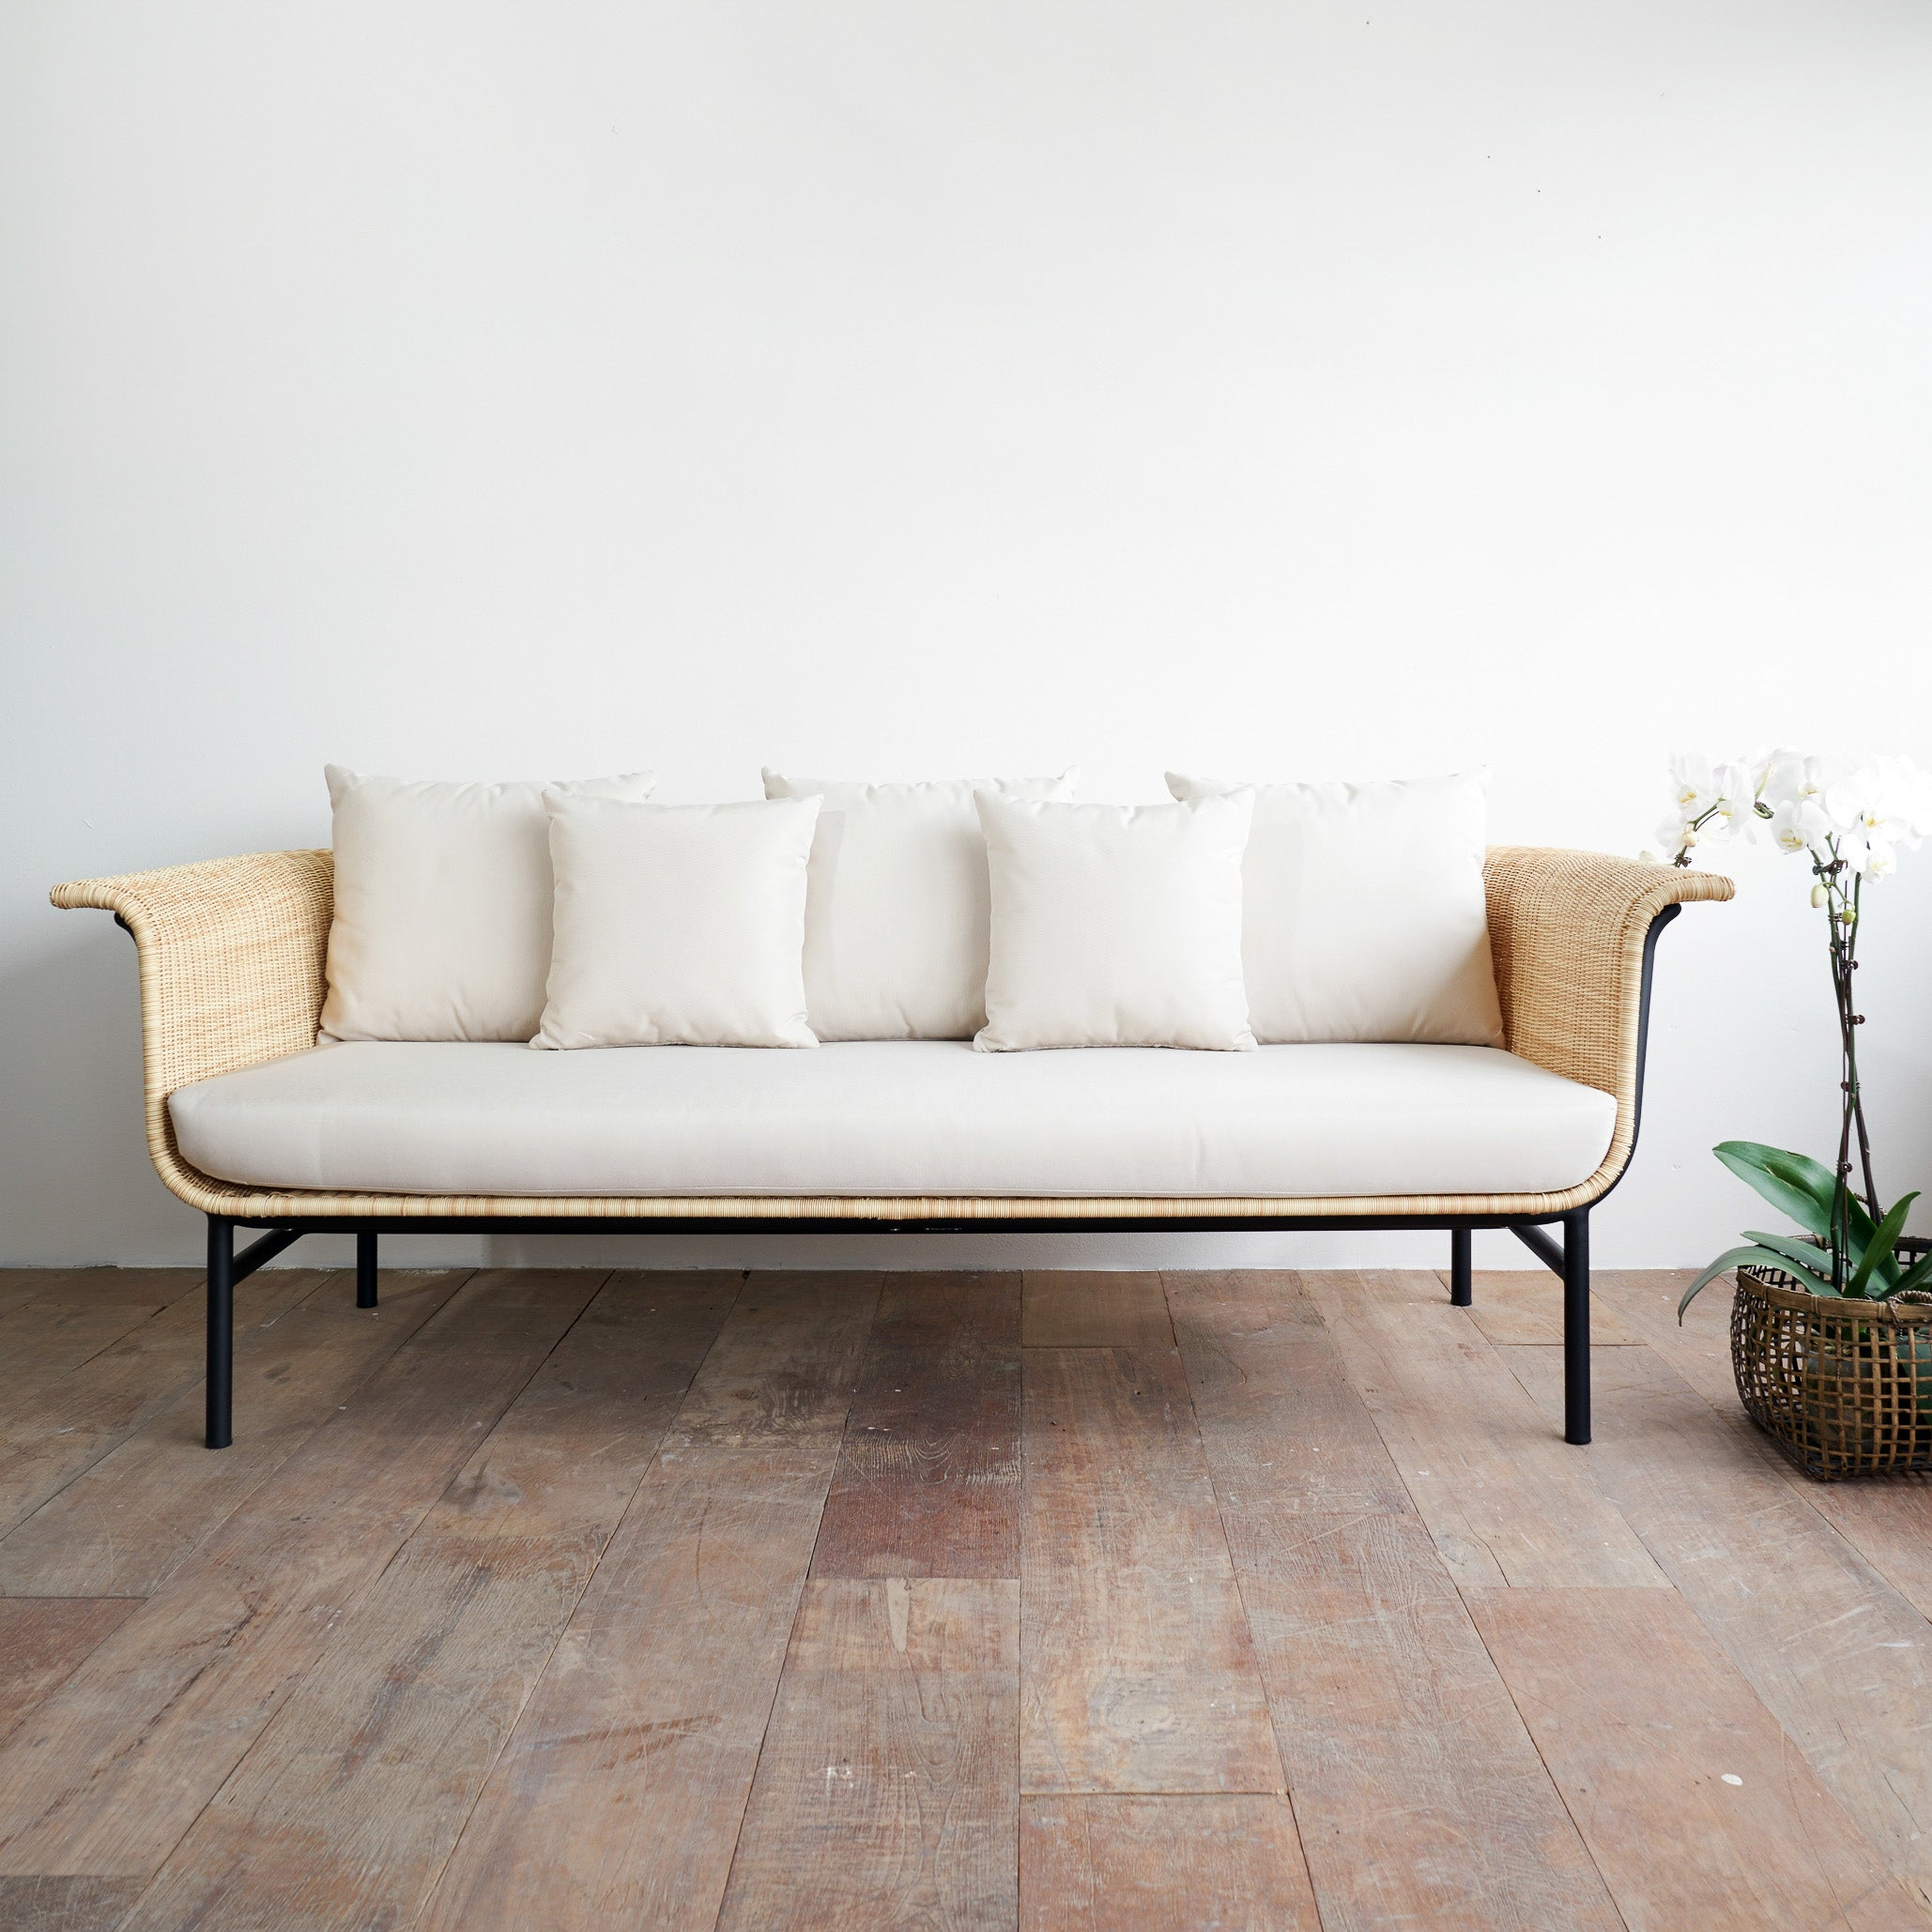 Outdoor Sofa | Wicked - Natural/White